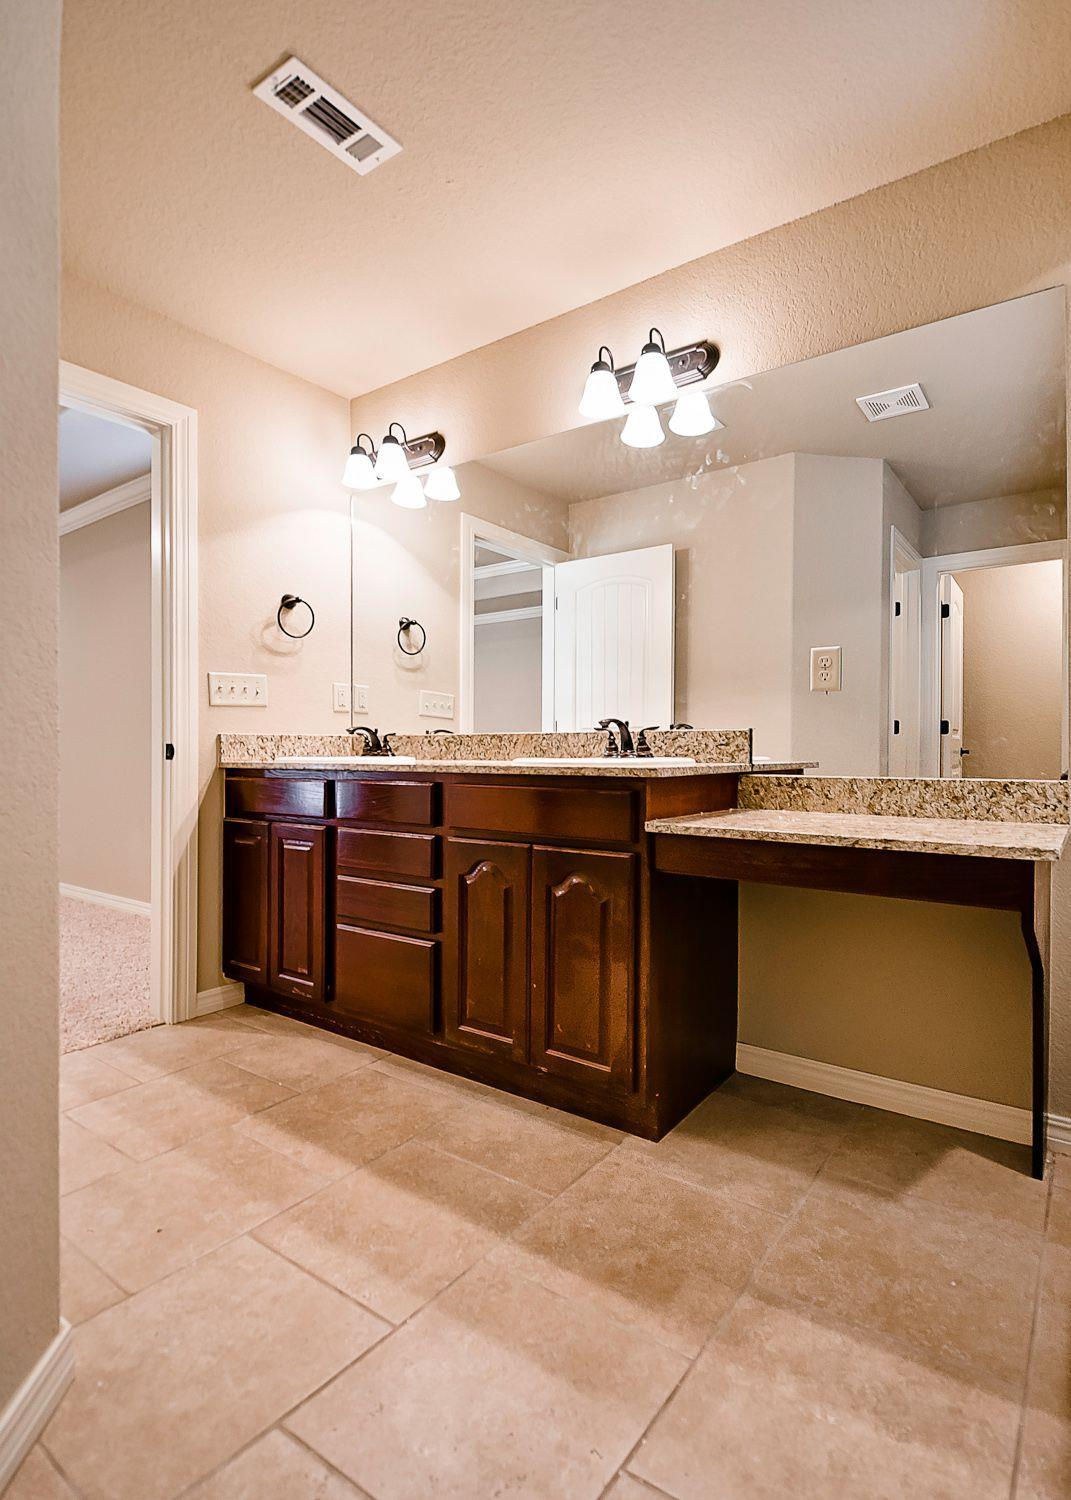 Bathroom featured in the Springs 1445 By Riverwood Homes - Arkansas in Fayetteville, AR